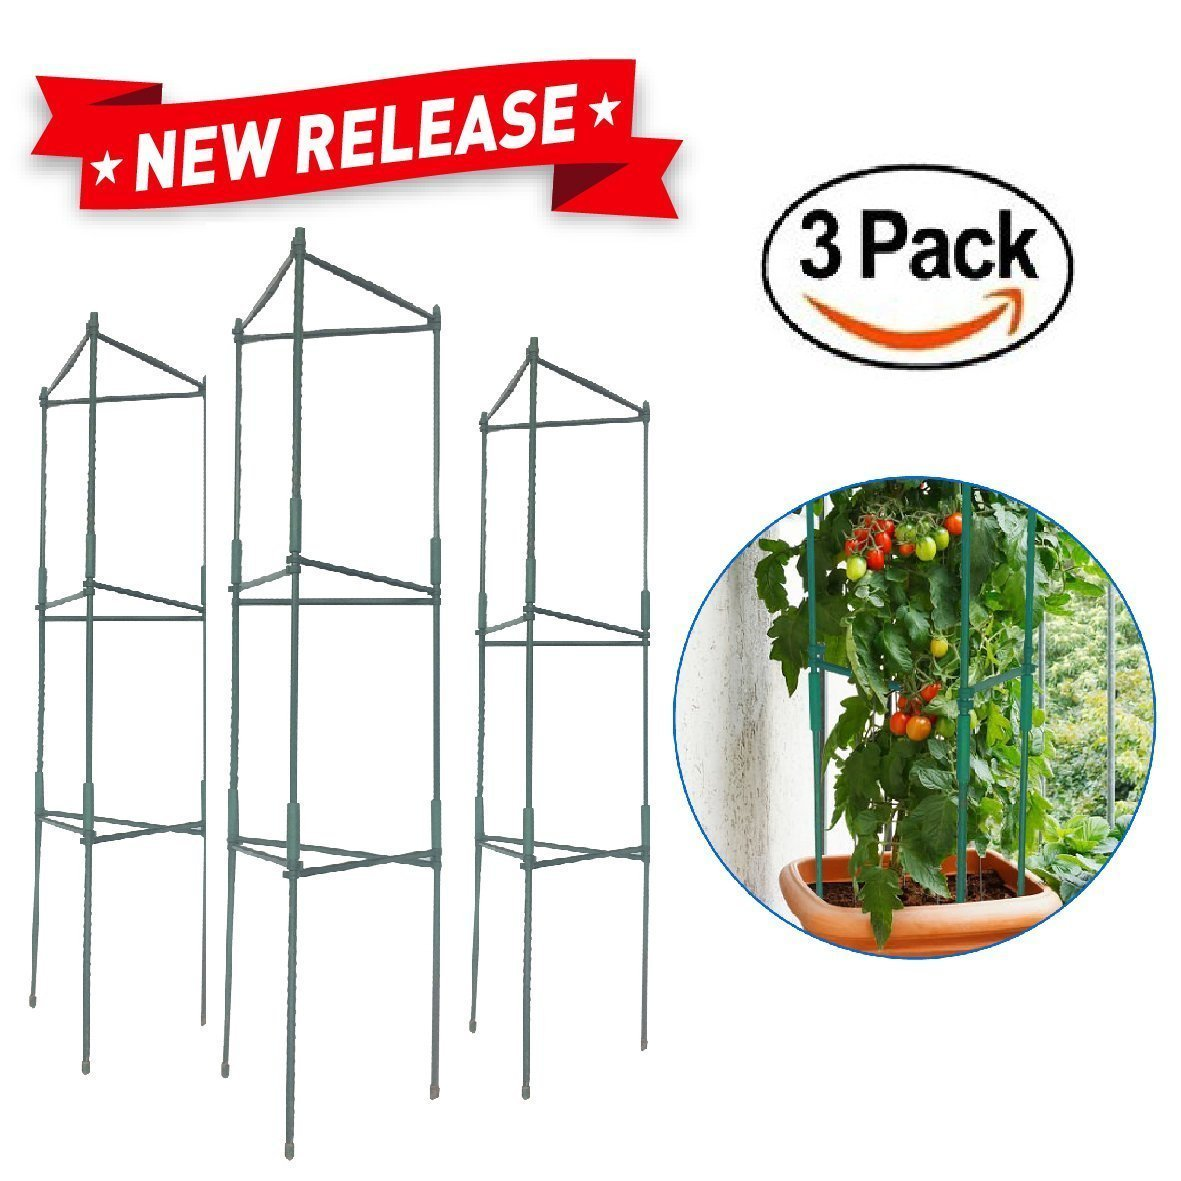 EasyGO Products EGP-GARD-020 Stakes-Vegetable Trellis-3 Pack Tomato Plant Cages 3